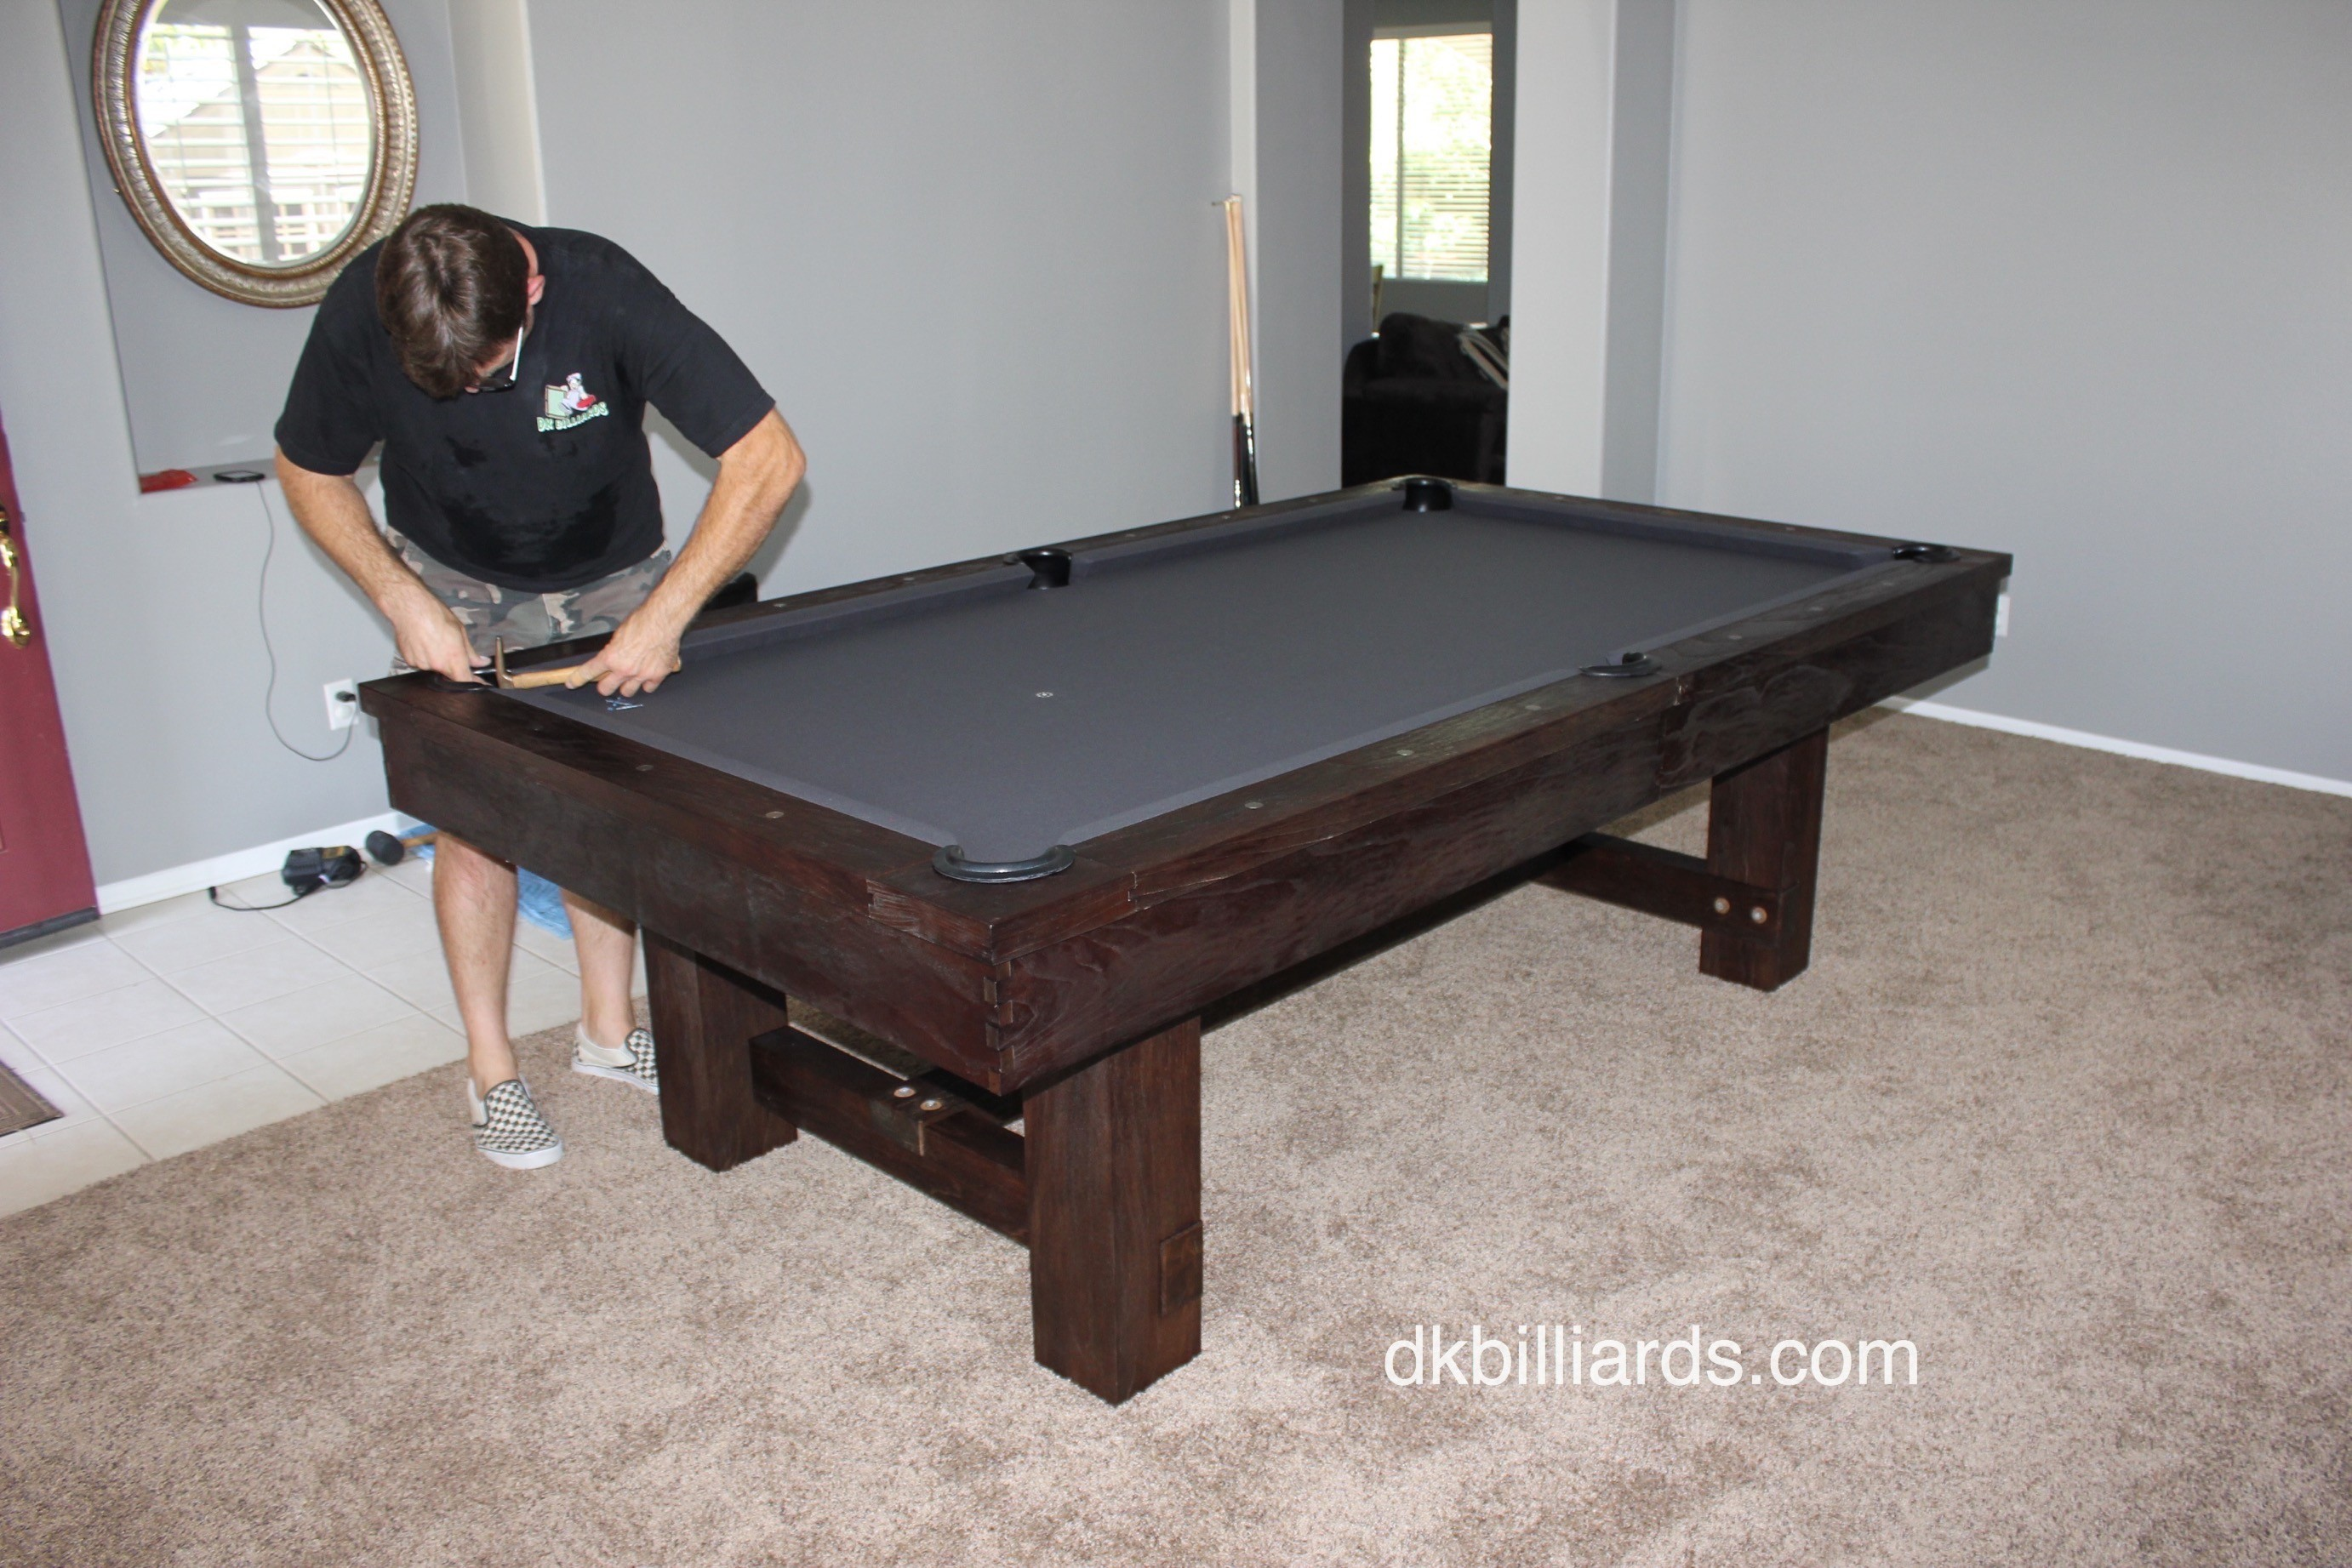 Pottery Barn Style Rustic Pool Table Dk Billiards